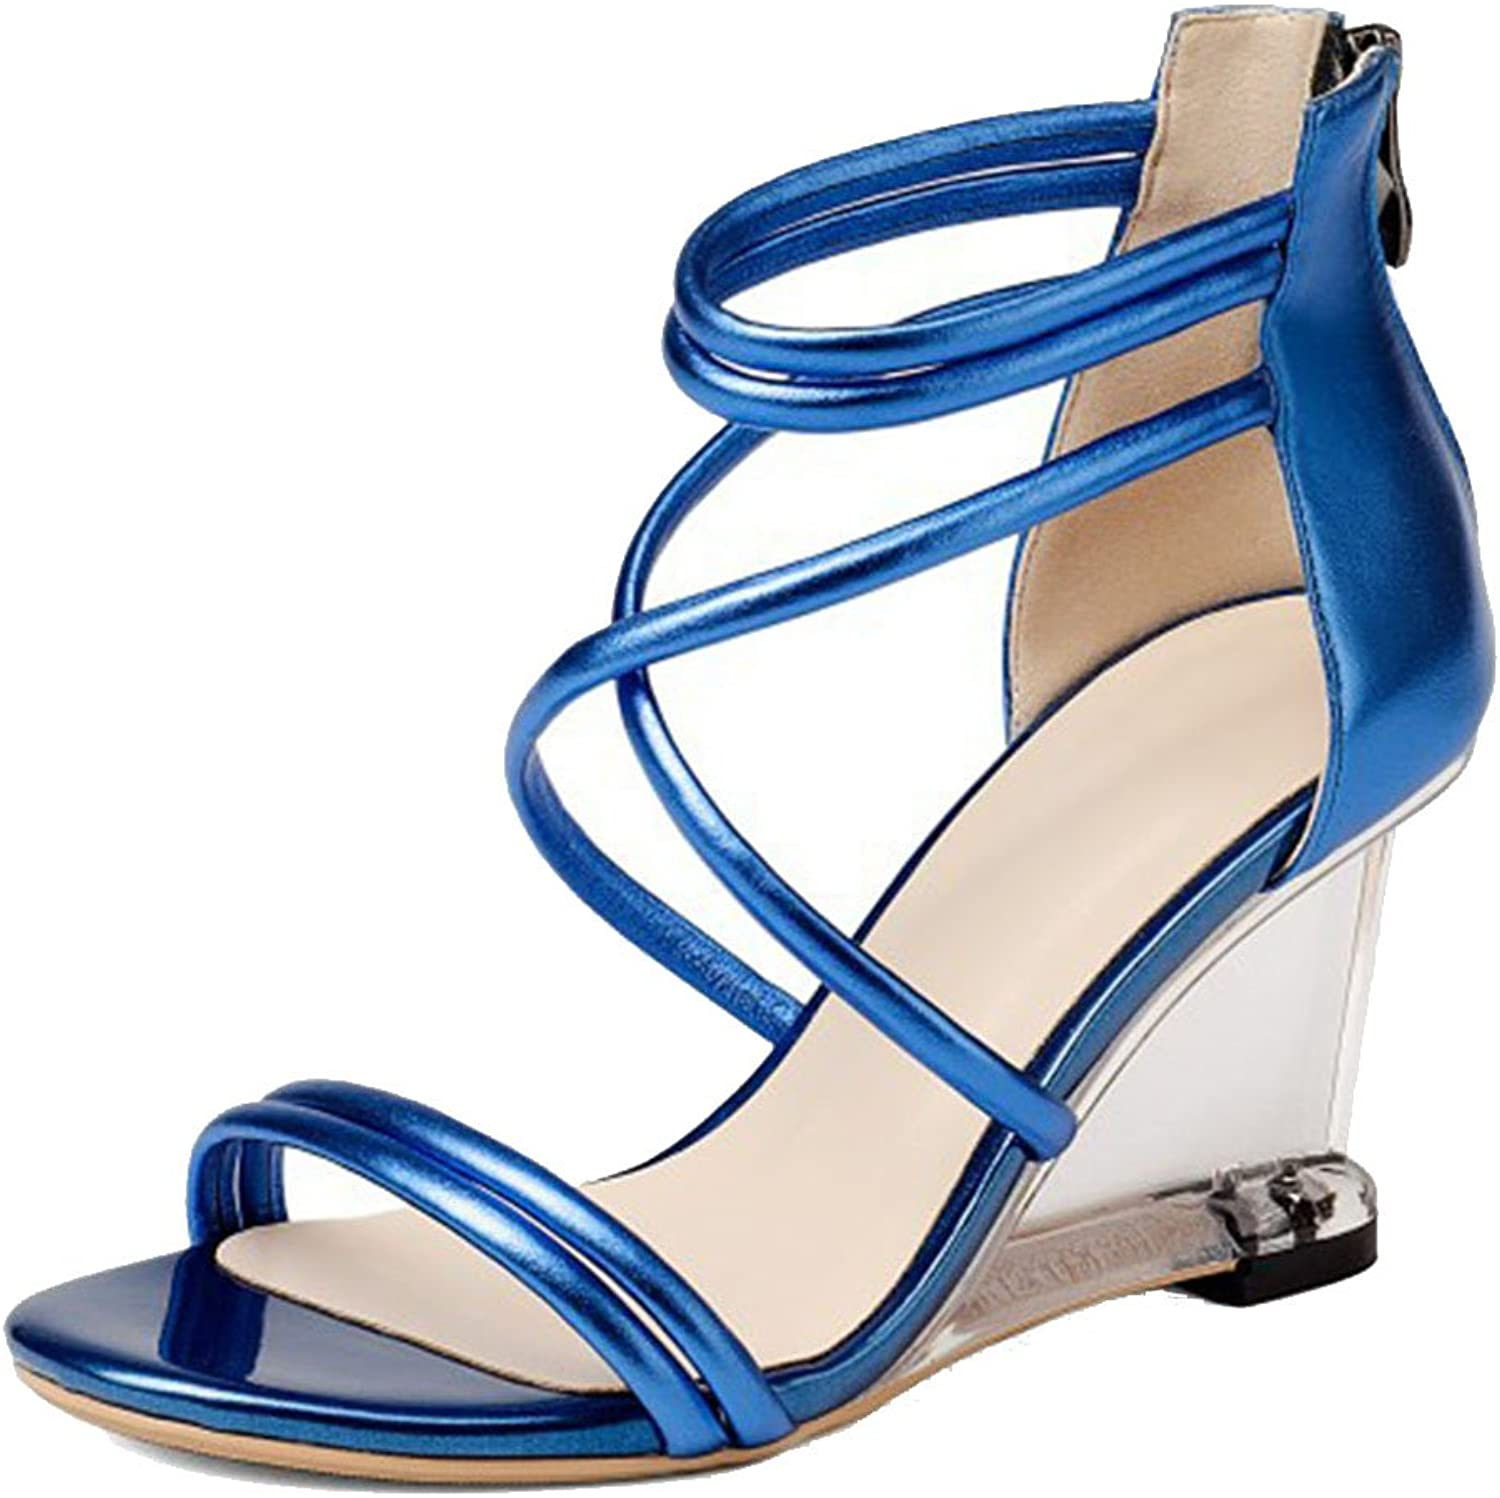 LZWSMGS Ladies and Women's Leather Sandals High Heels Summer Open Toe High Heels Cross Straps Wedge shoes Sandals Party Ball Evening Dress shoes Ladies Sandals (color   bluee, Size   36)